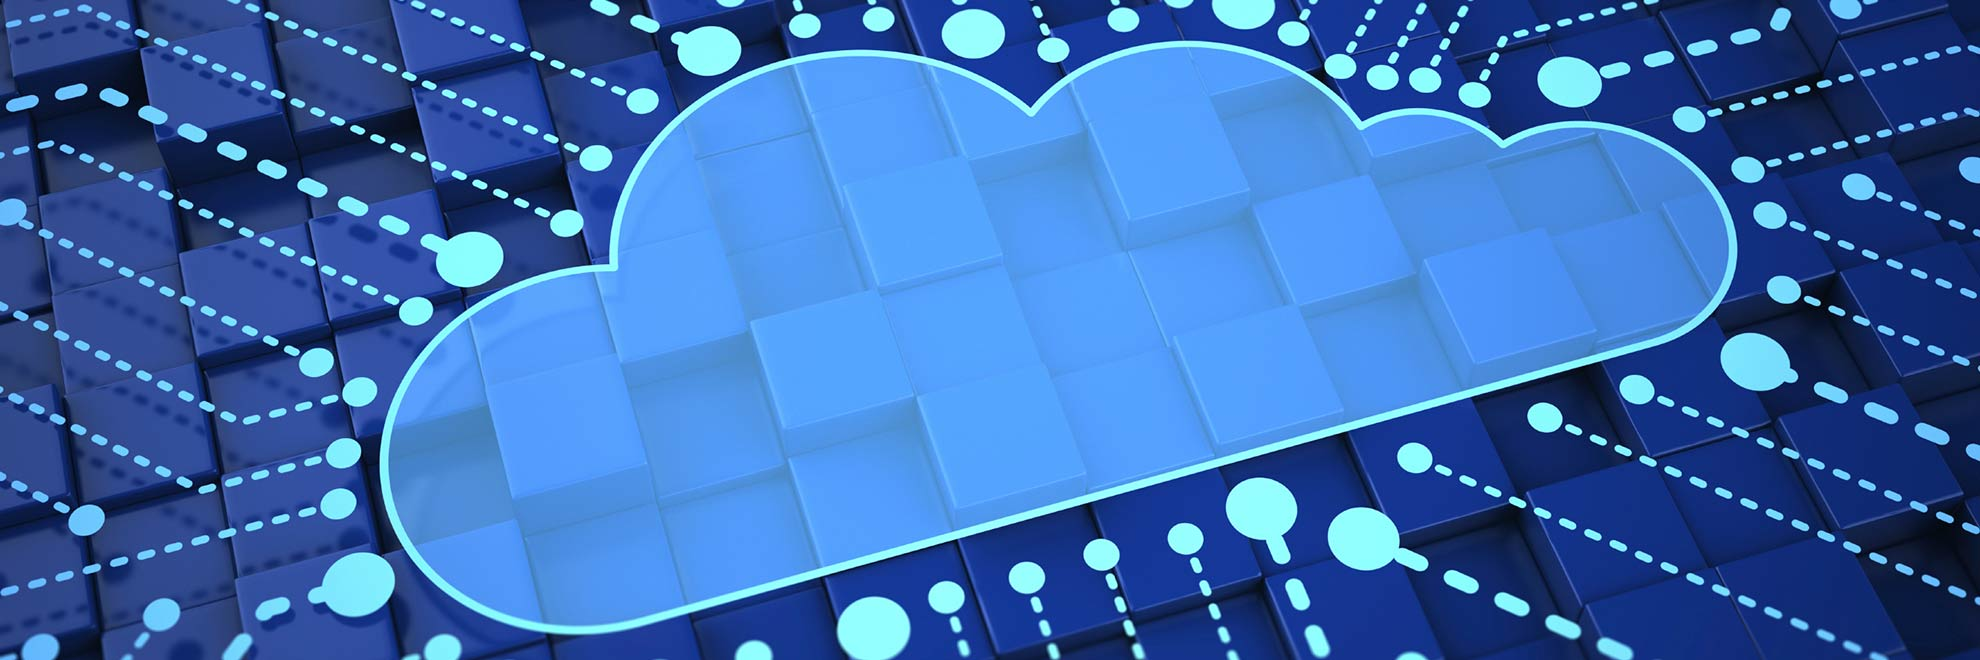 Business demands for agility and innovation prompt rise of cloud native applications: adoption is set to double by 2020